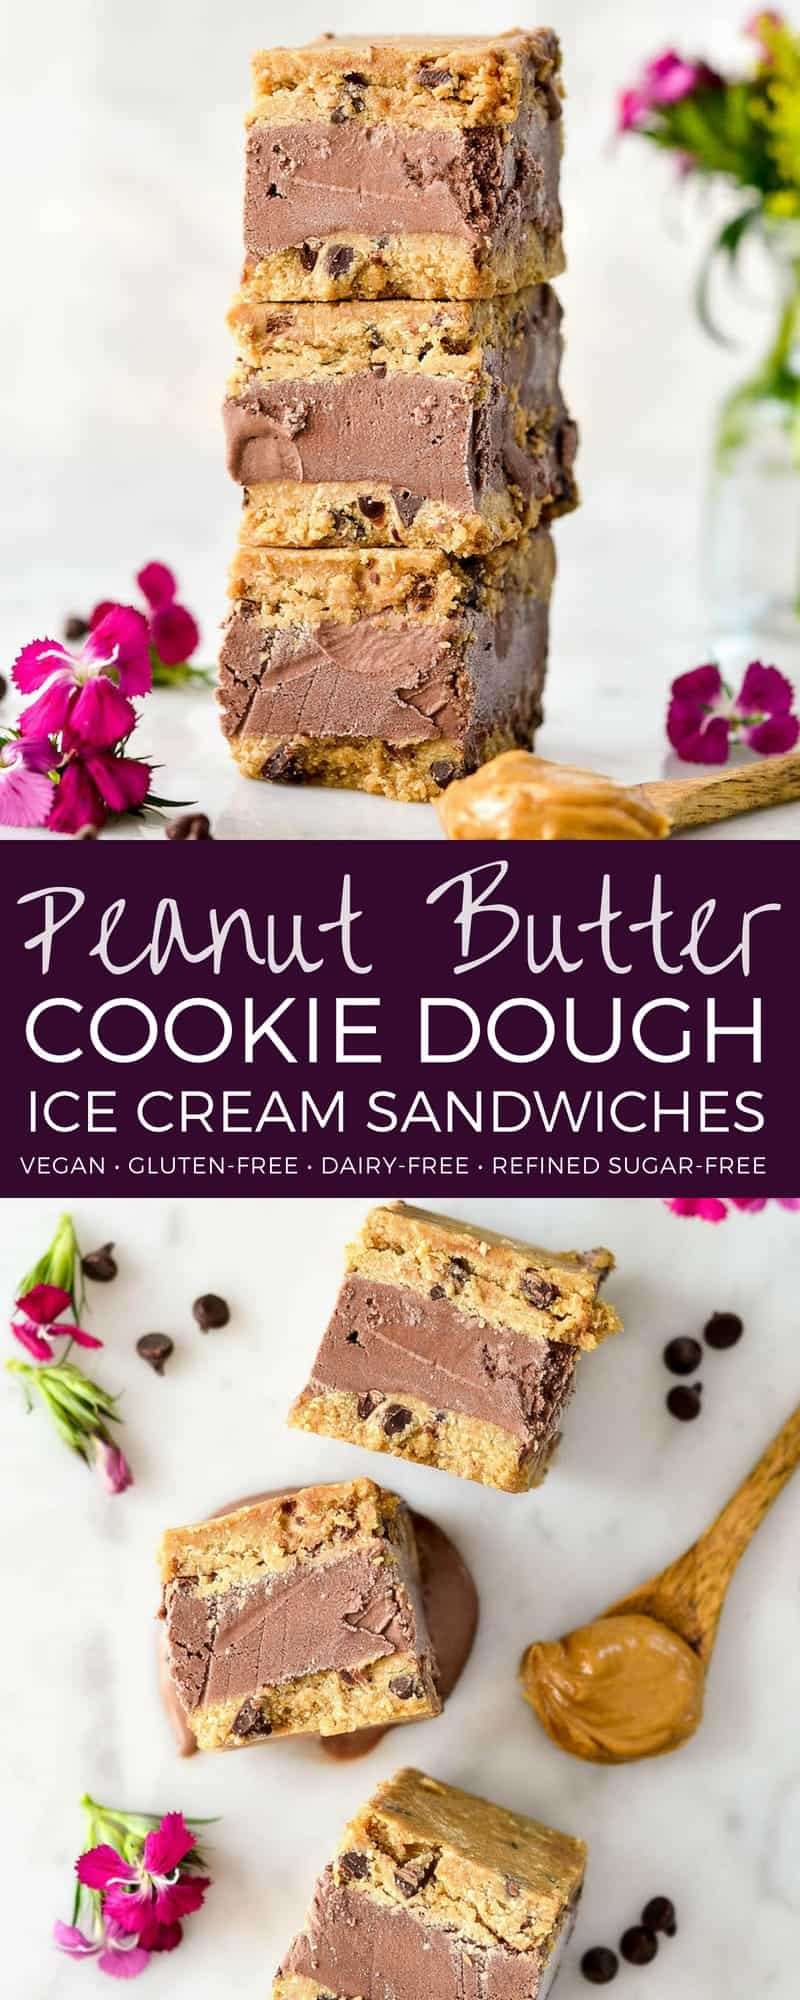 Vegan & Gluten-Free Peanut Butter Cookie Dough Ice Cream Sandwiches are a healthy summer dessert! This no-bake recipe is so easy to make and perfect for chocolate peanut butter lovers! #glutenfree #vegan #icecreamsandwich #icecream #dessert #vegandessert